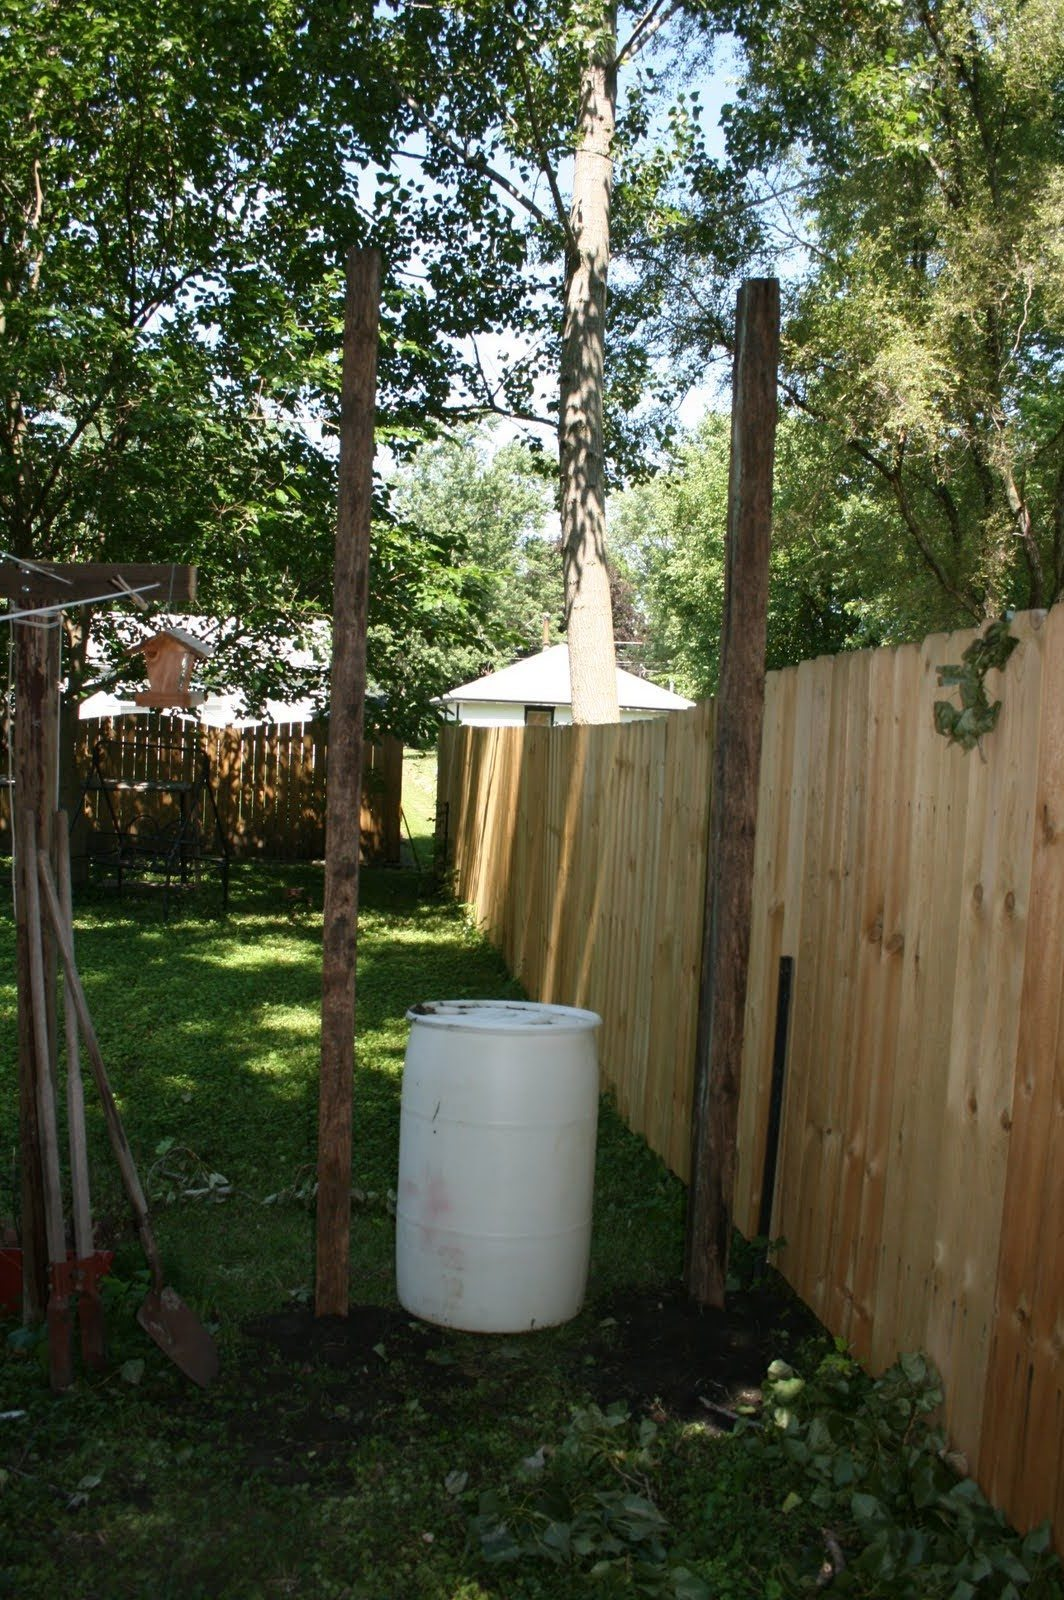 Barrel and two posts in yard next to fence